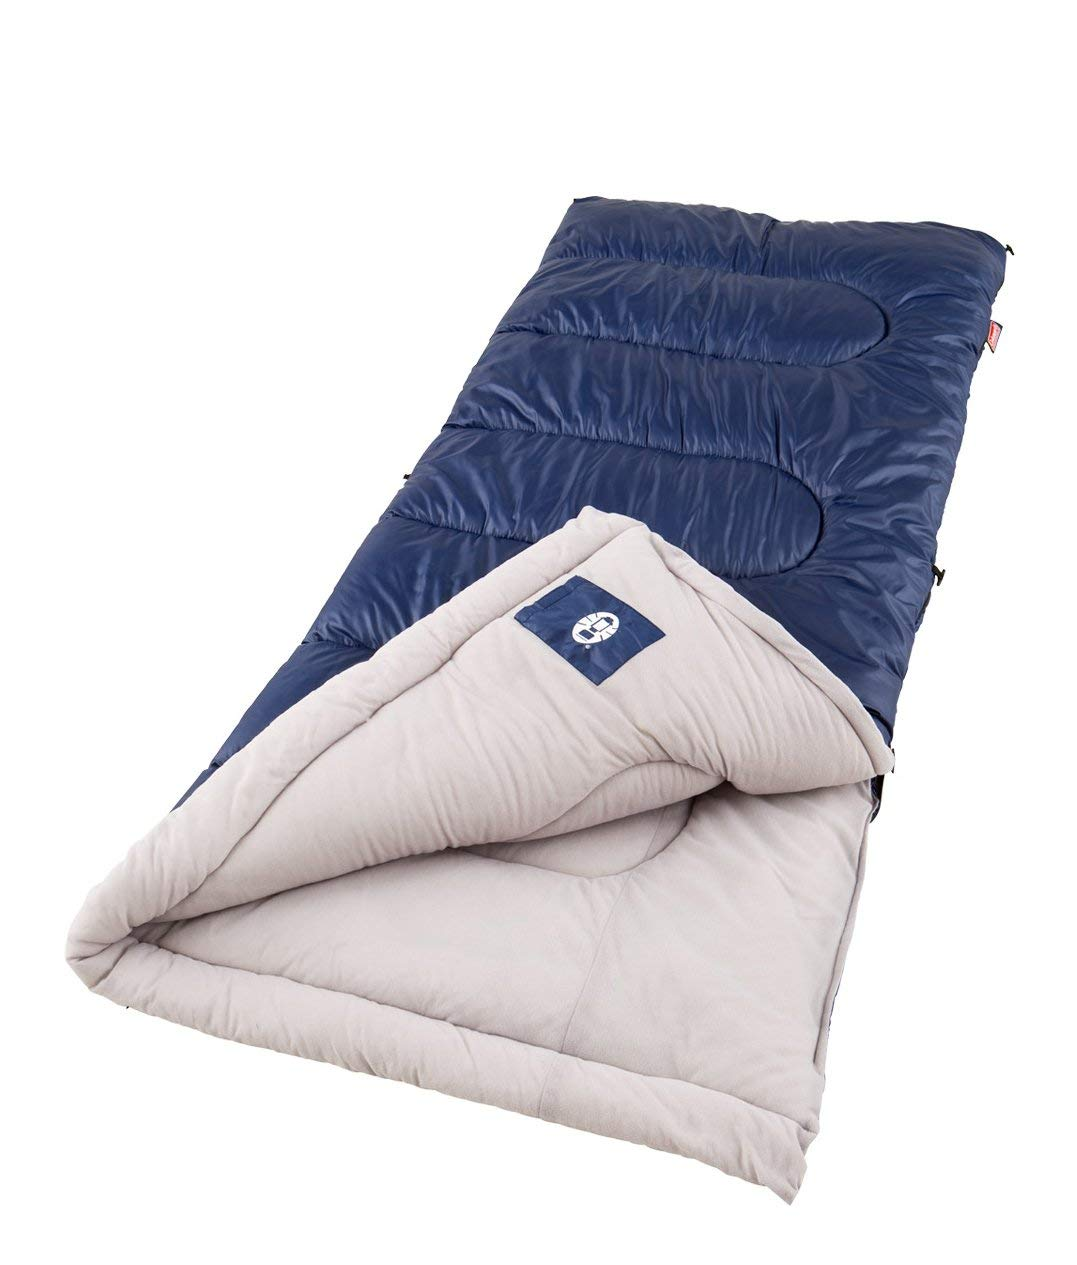 An image related to Coleman Brazos 2000004419 Polyester Sleeping Bag